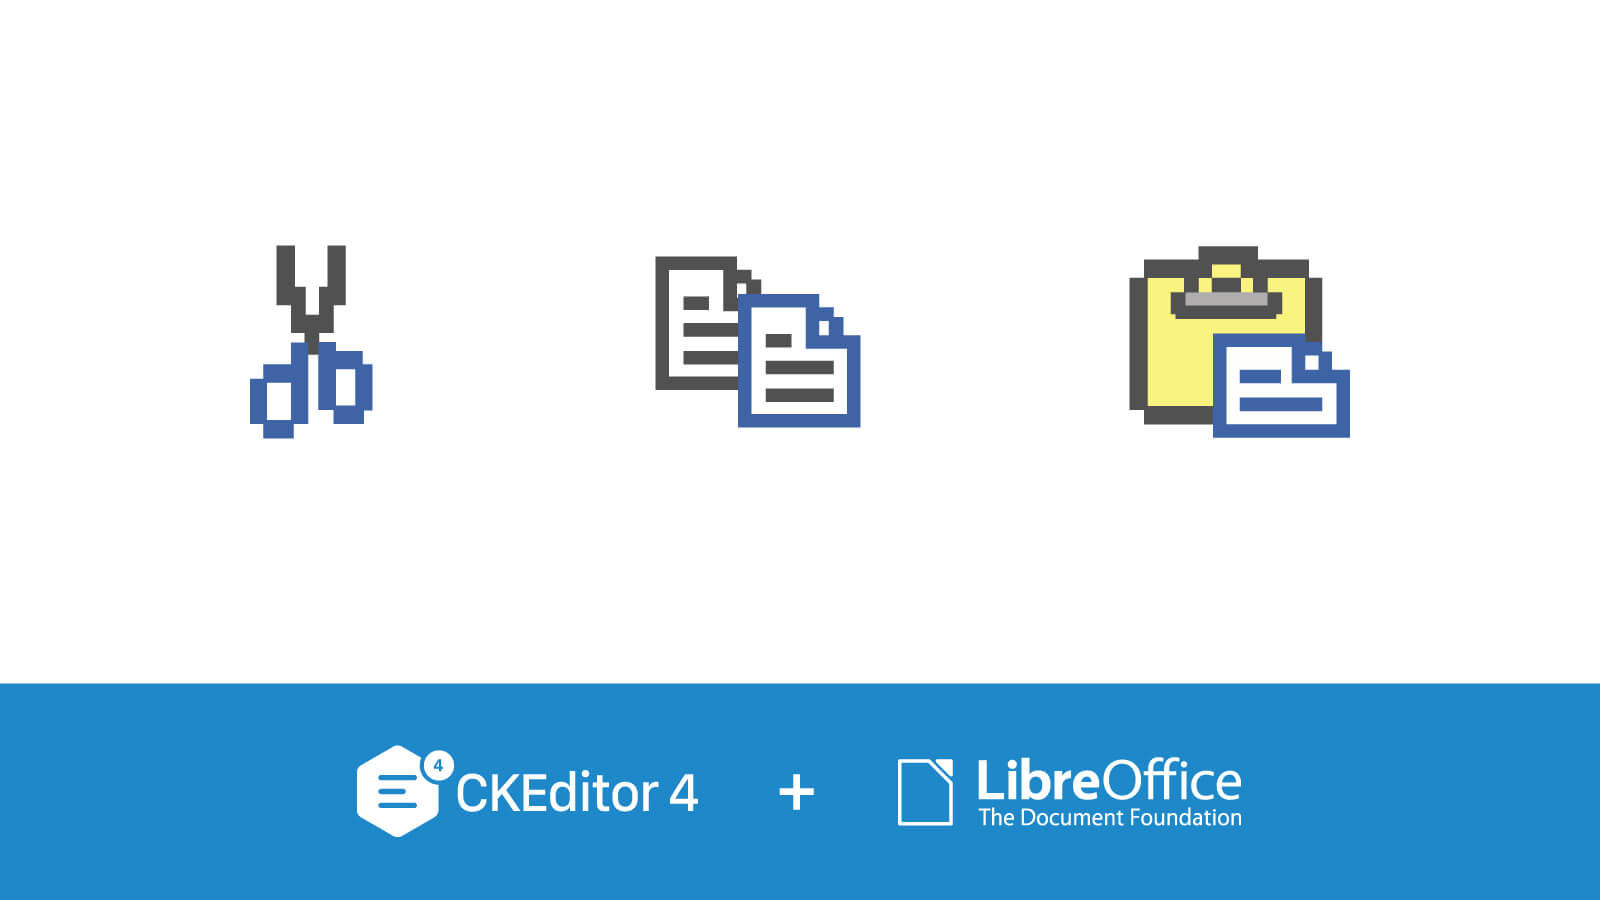 Pasting from Libreoffice to CKEditor 4